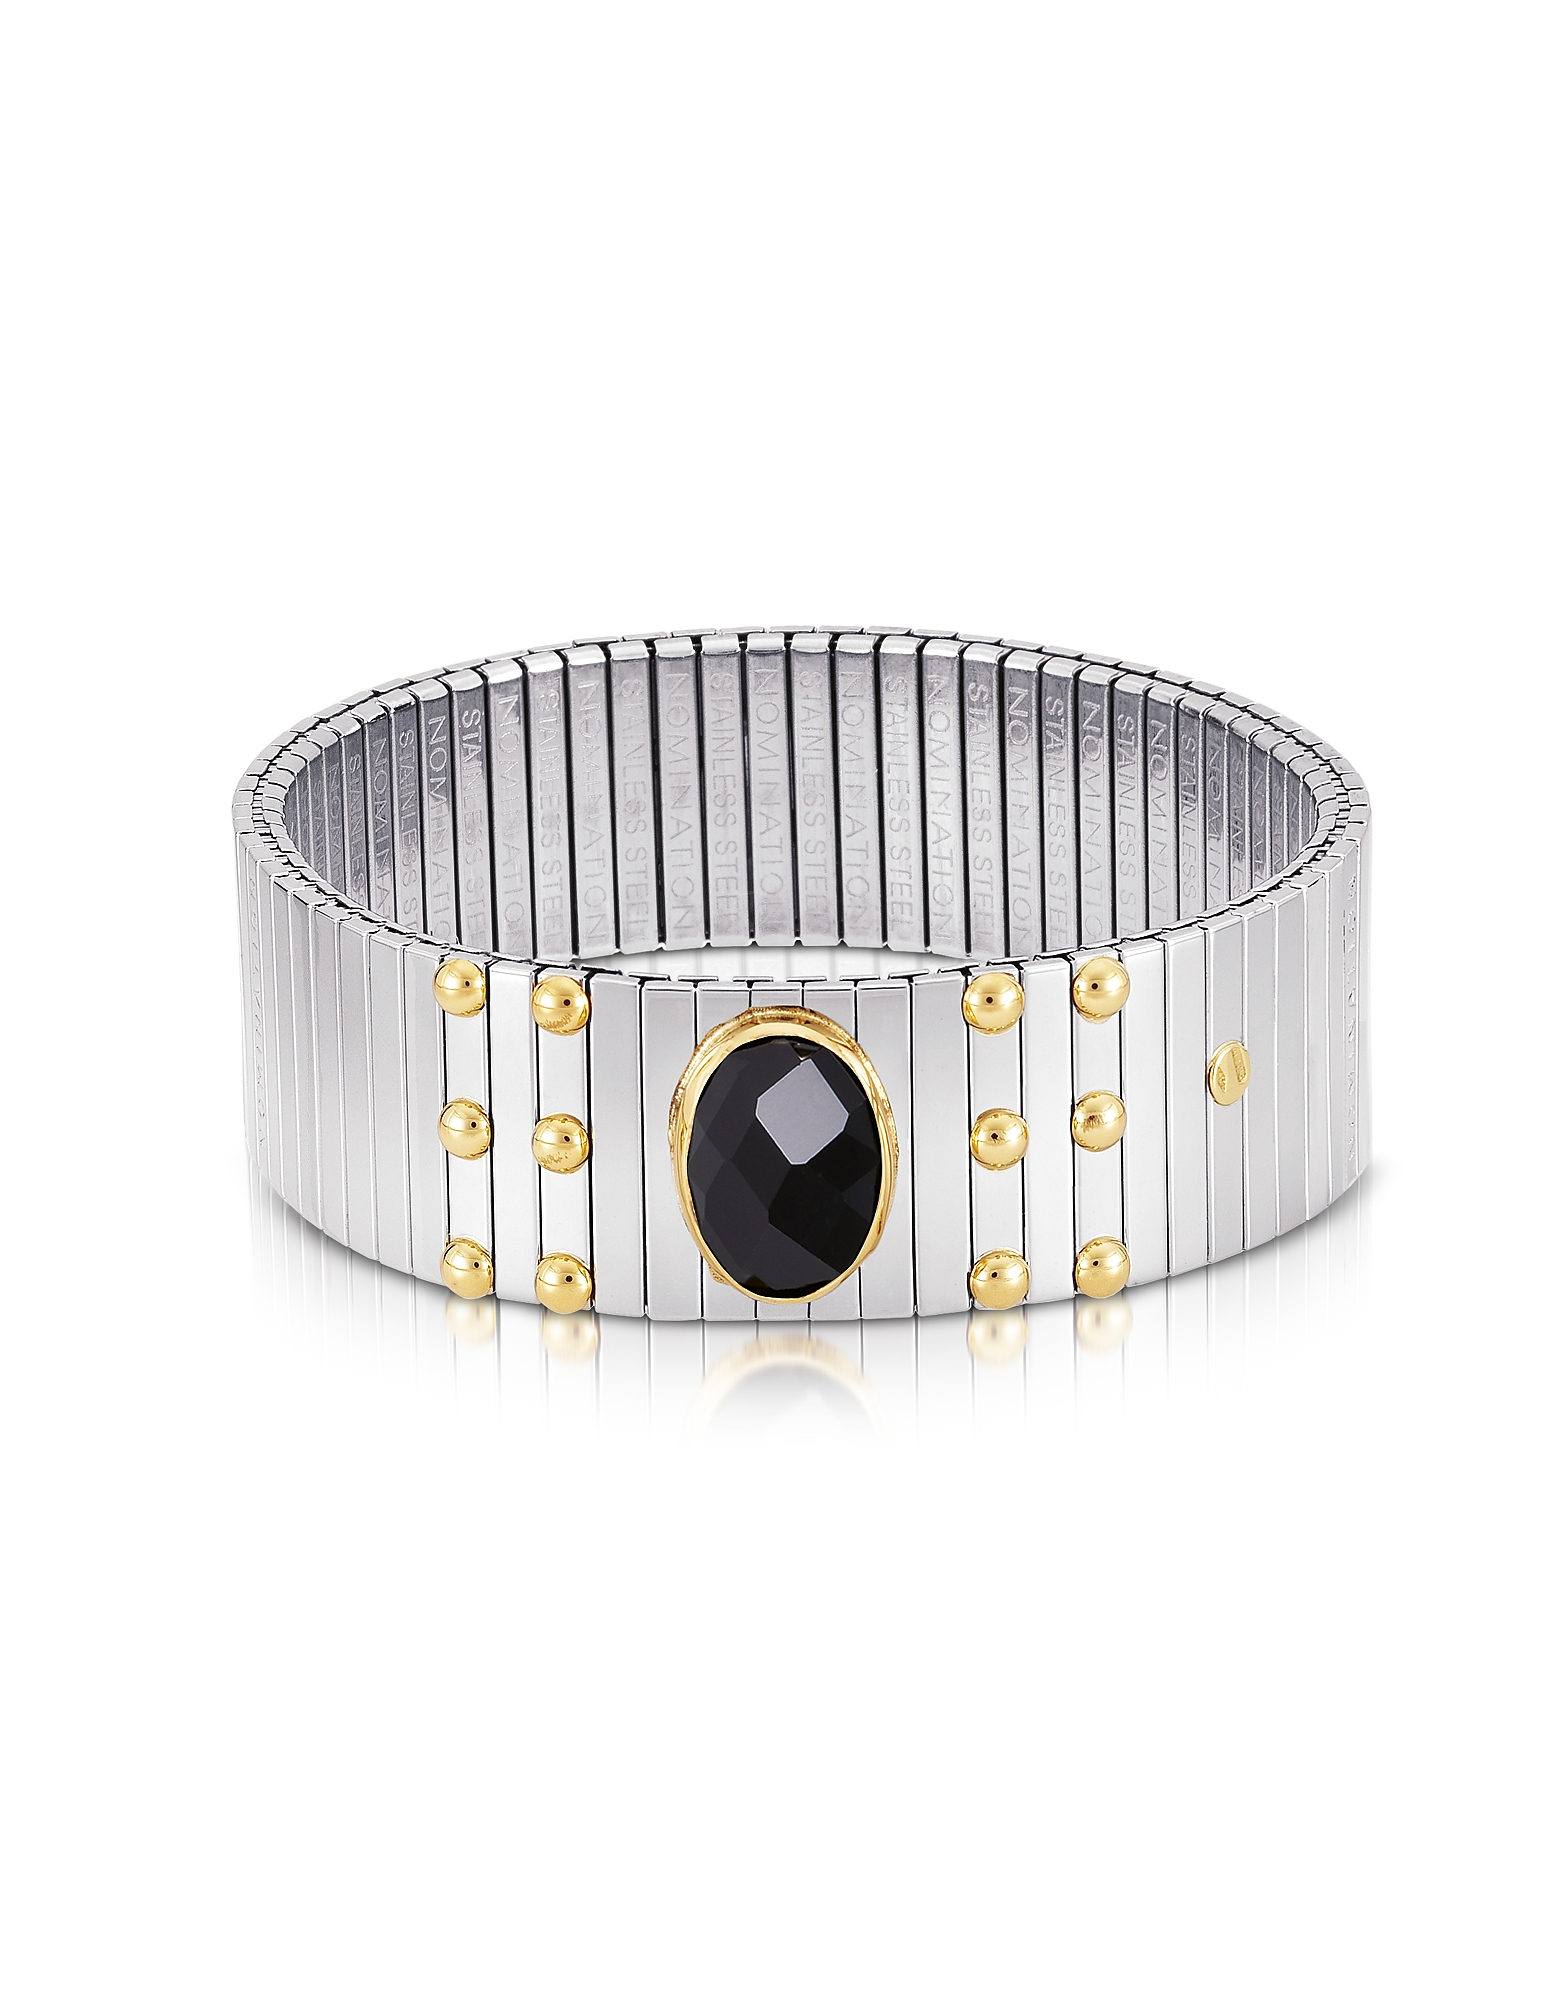 Nomination Bracelets, Single Black Cubic Zirconia Stainless Steel w/Golden Studs Women's Bracelet